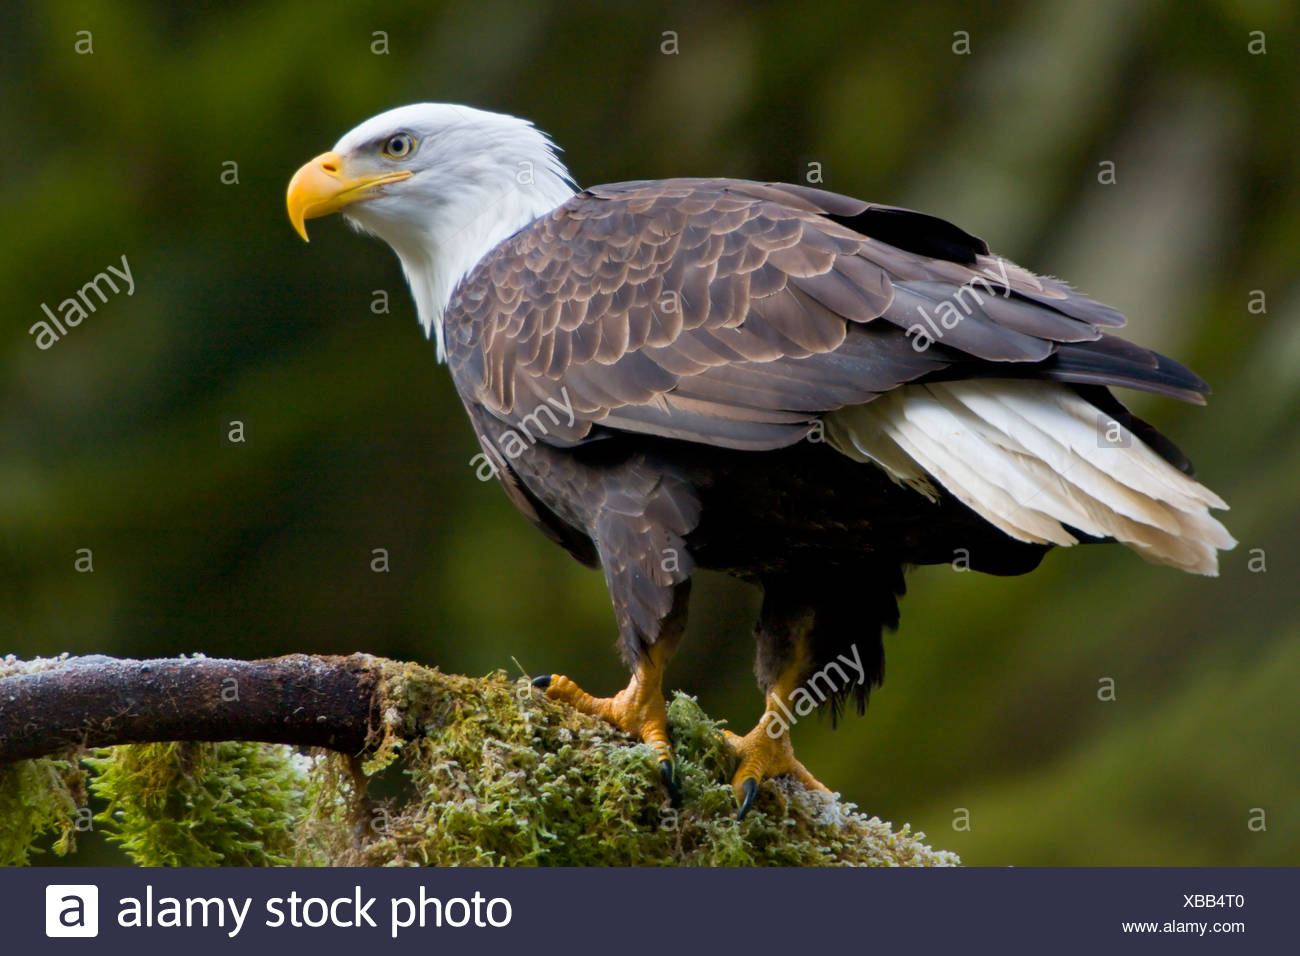 Bald eagle (Haliaeetus leucocephalus) perched on a mossy branch in Victoria, Vancouver Island, British Columbia, Canada - Stock Image